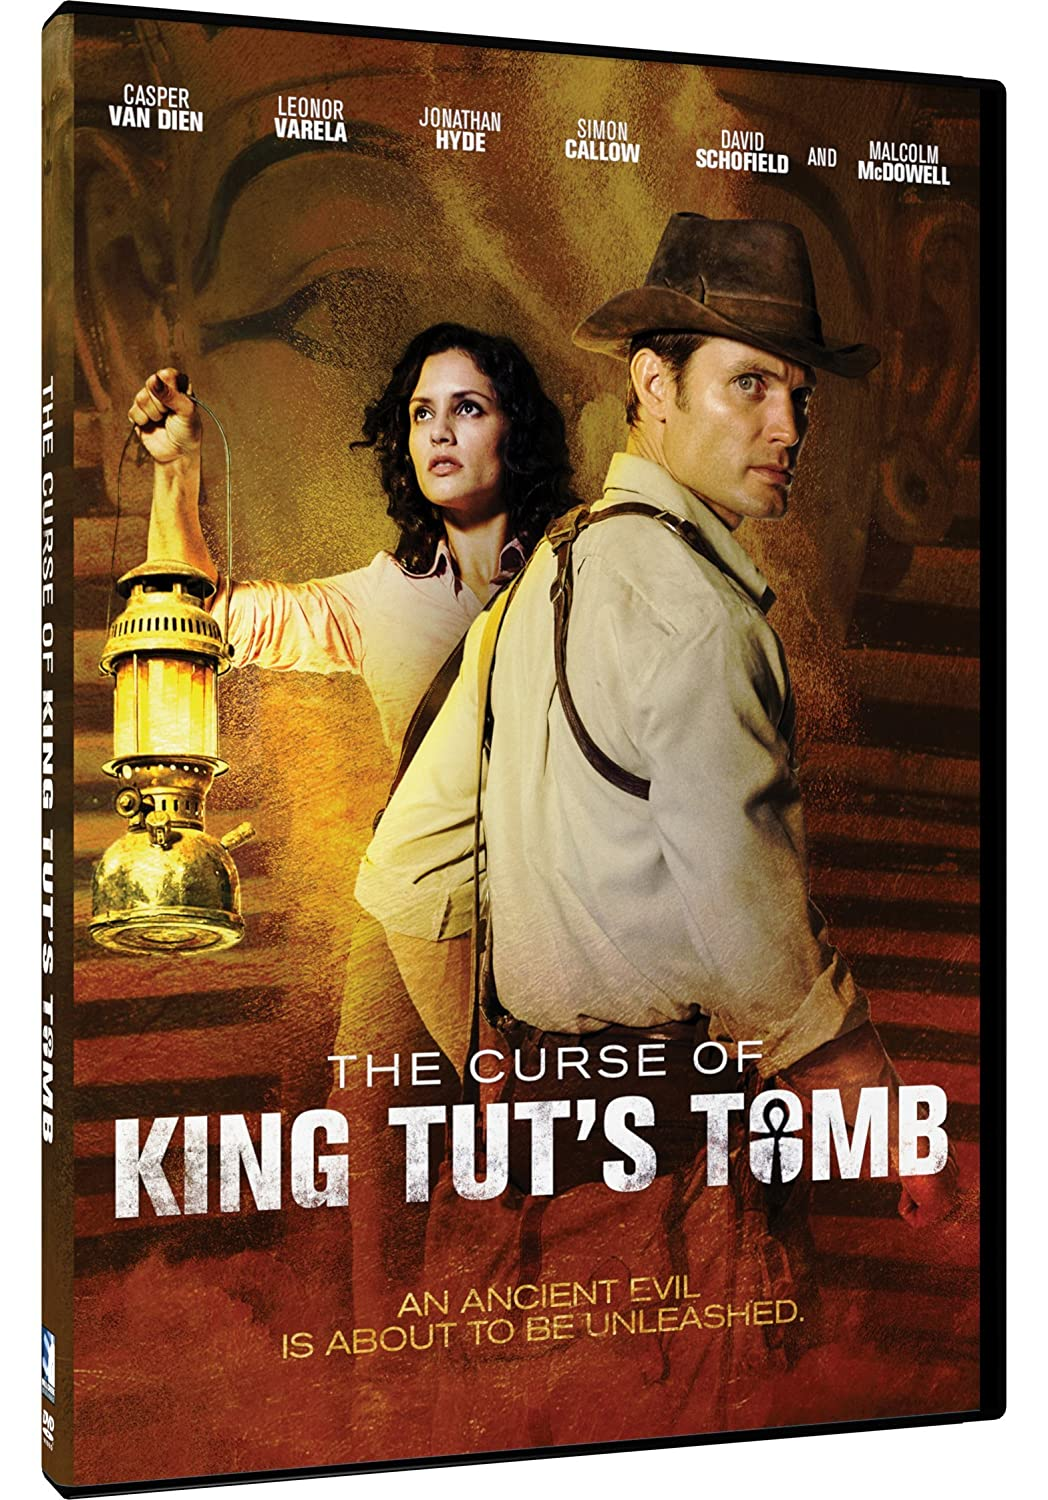 The Curse Of King Tuts Tomb Torrent: Cheapest Ever Blu FIREFLY 15, WESTWORLD & BLADE RUNNER